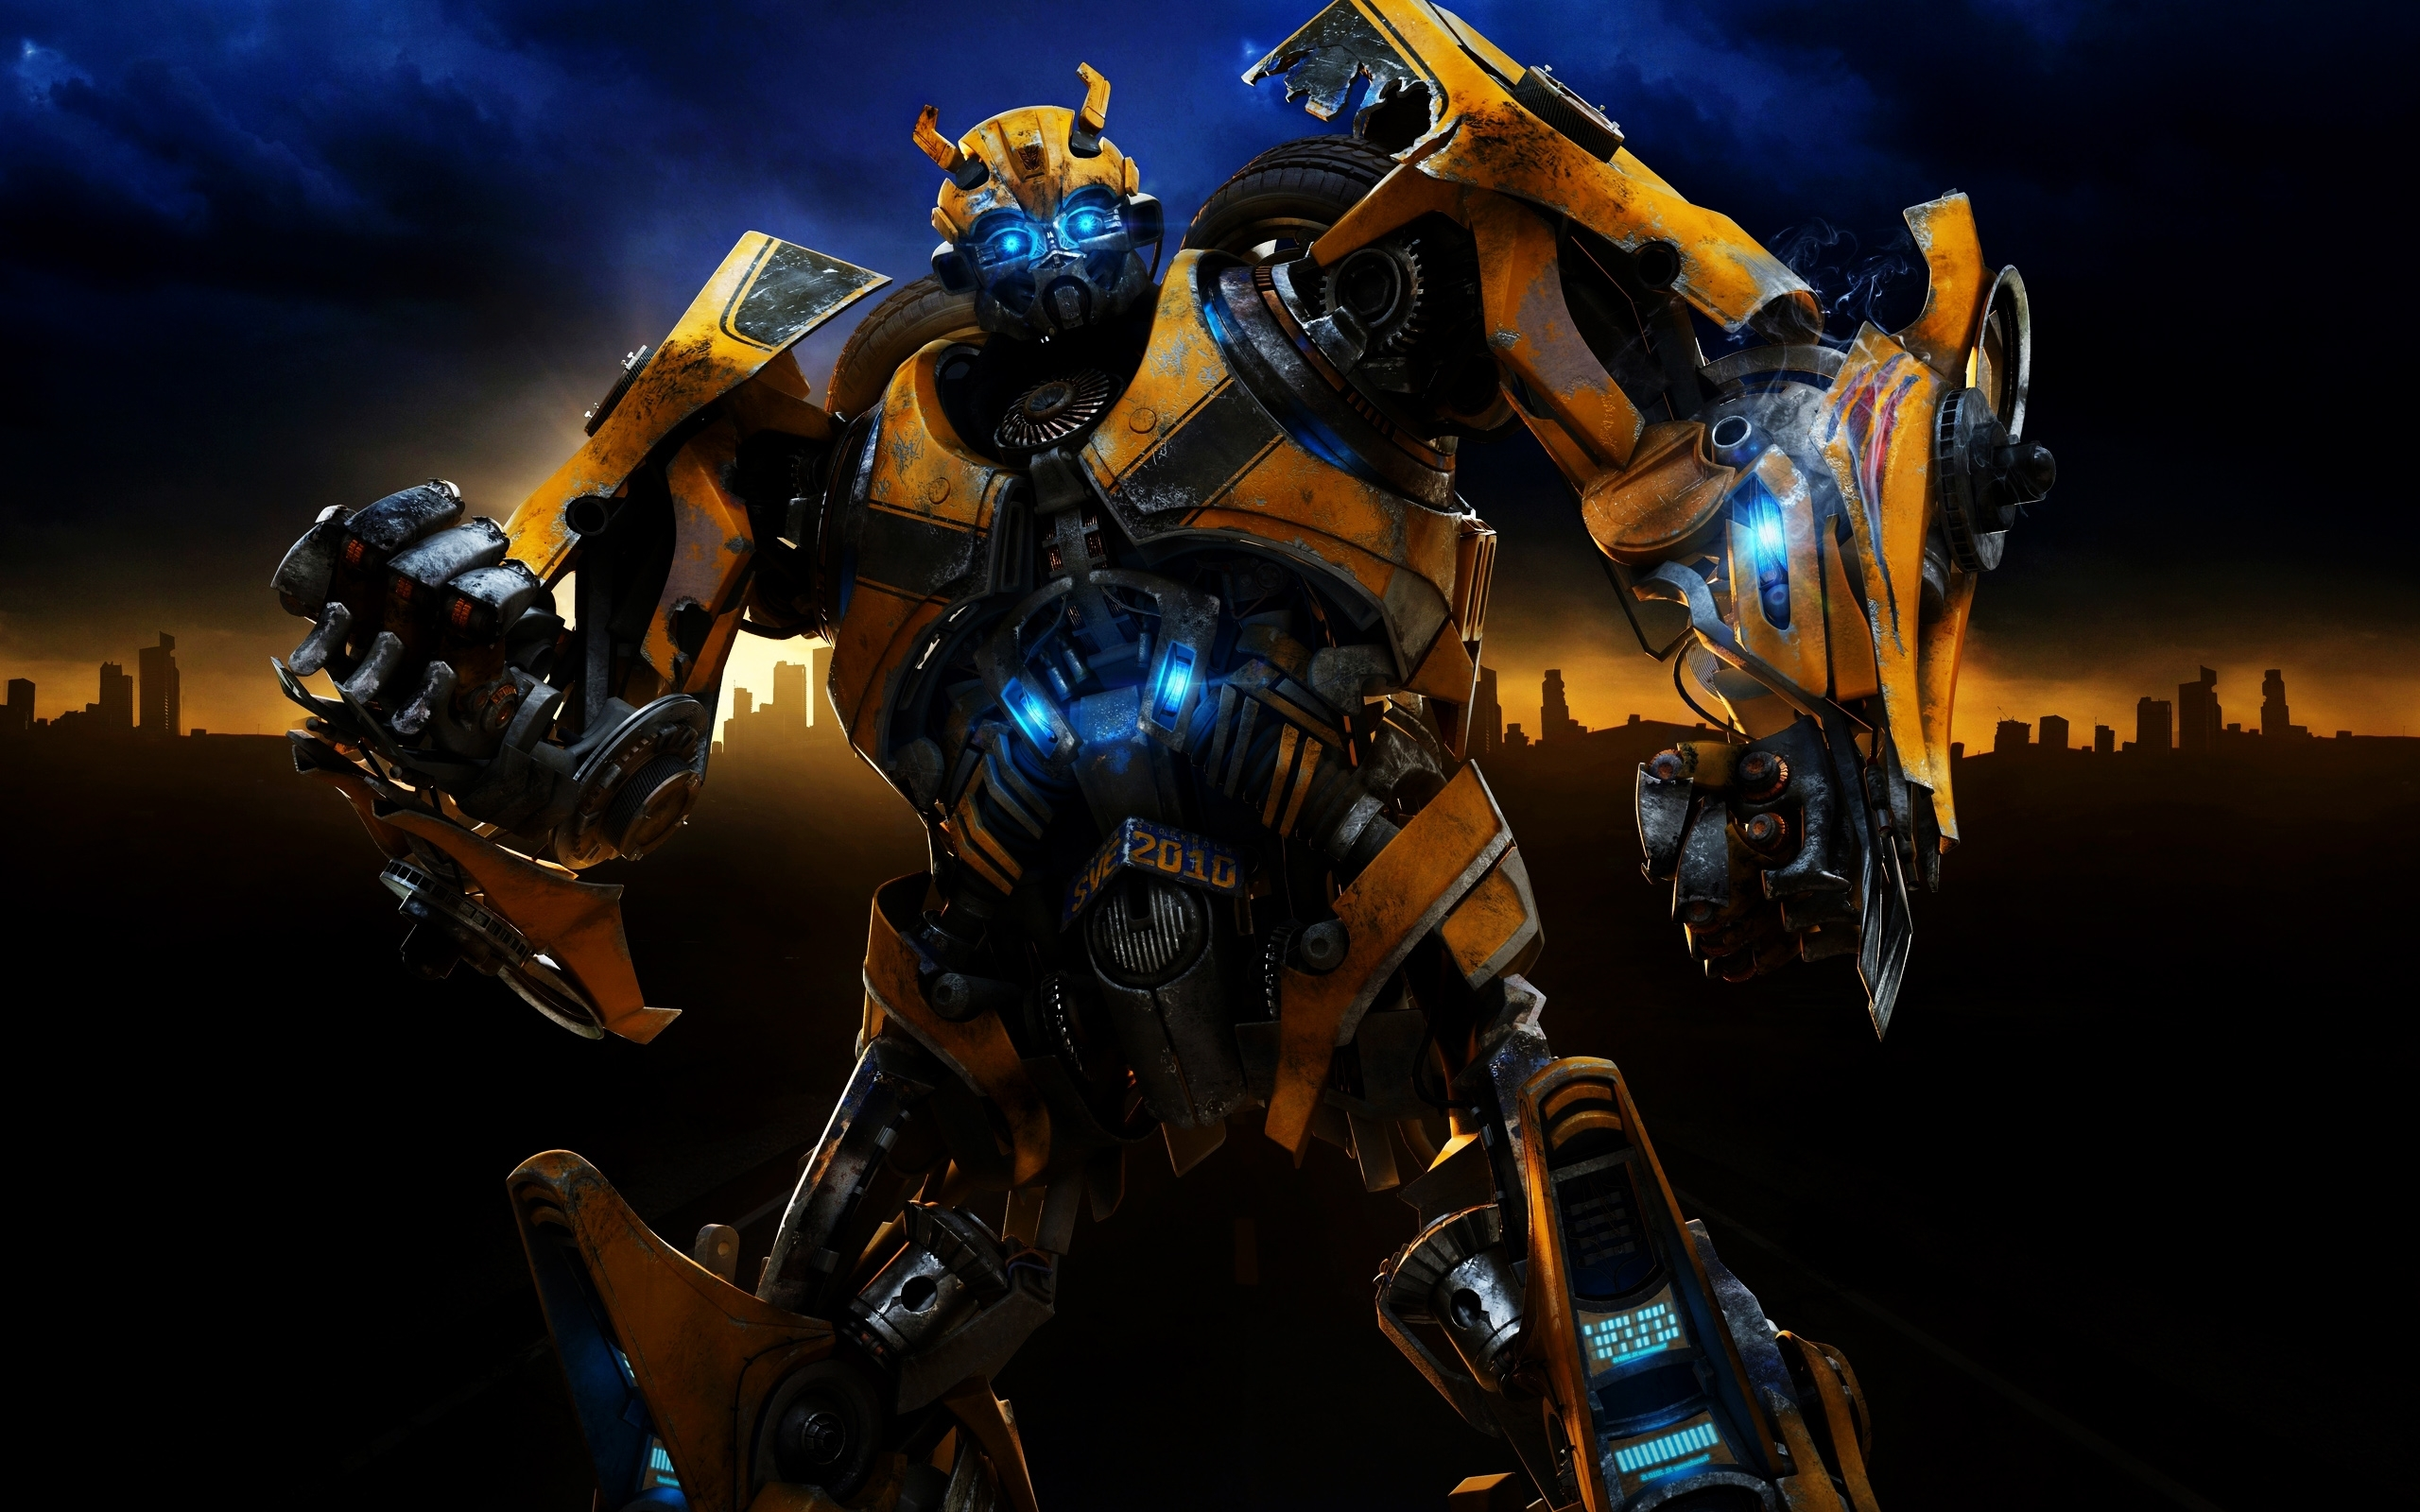 Transformers Fall Of Cybertron 4k Wallpaper Bumble Bee Transformers Car Hd